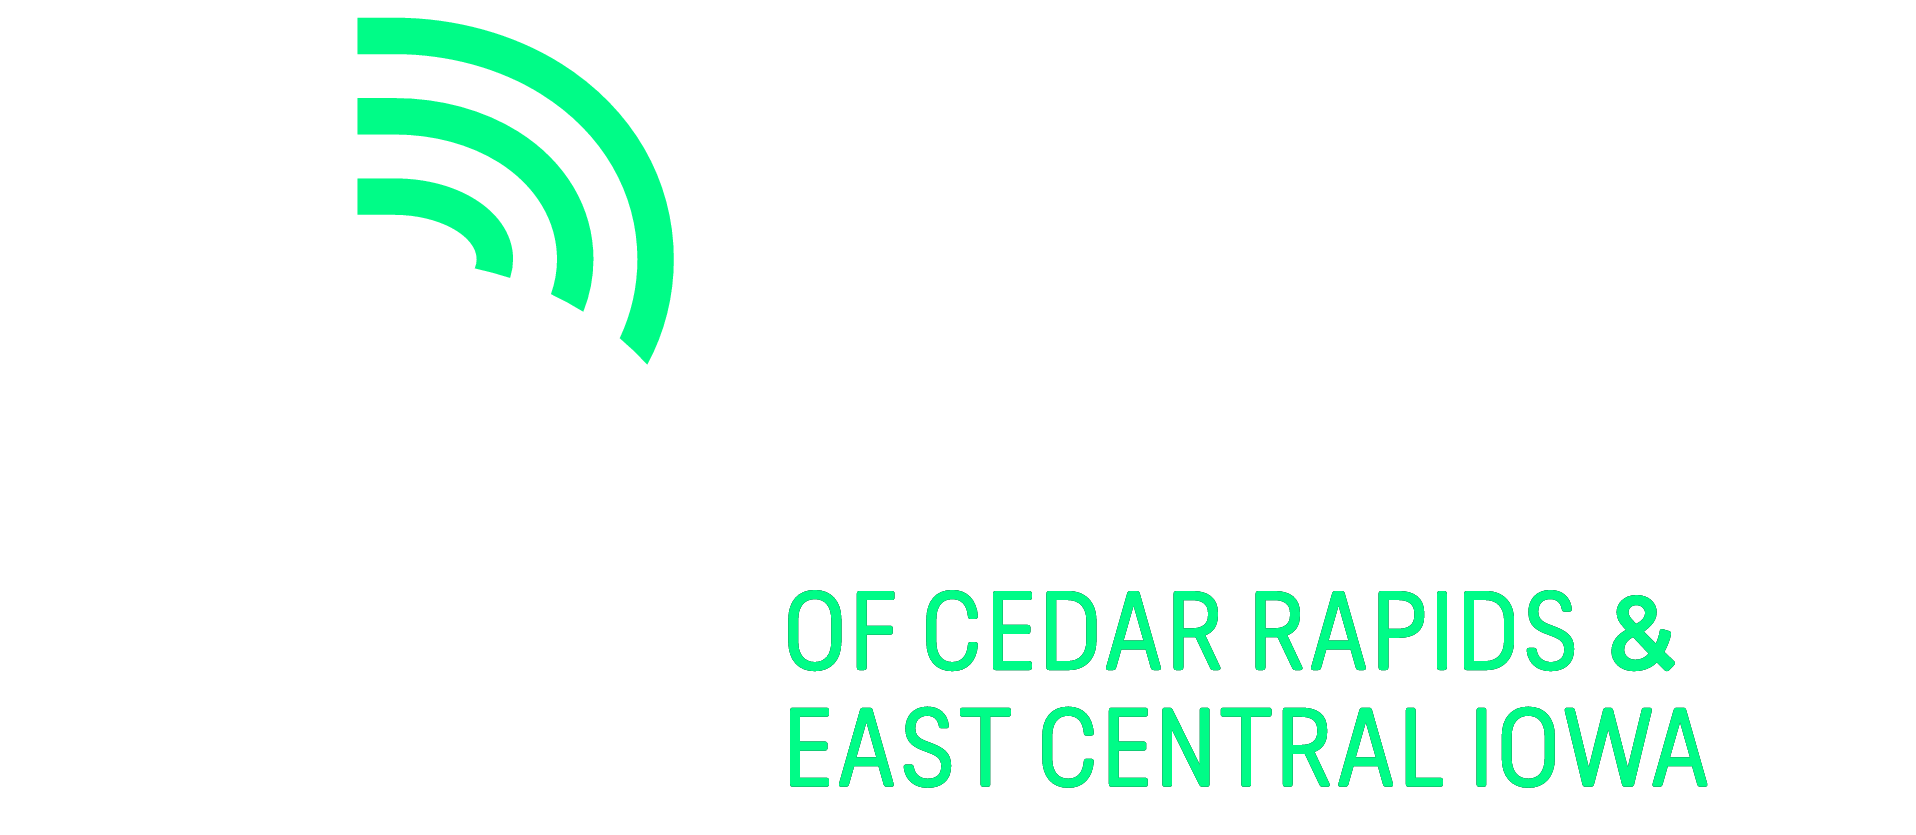 Big Brothers Big Sisters of Cedar Rapids and East Central Iowa – Youth Mentoring